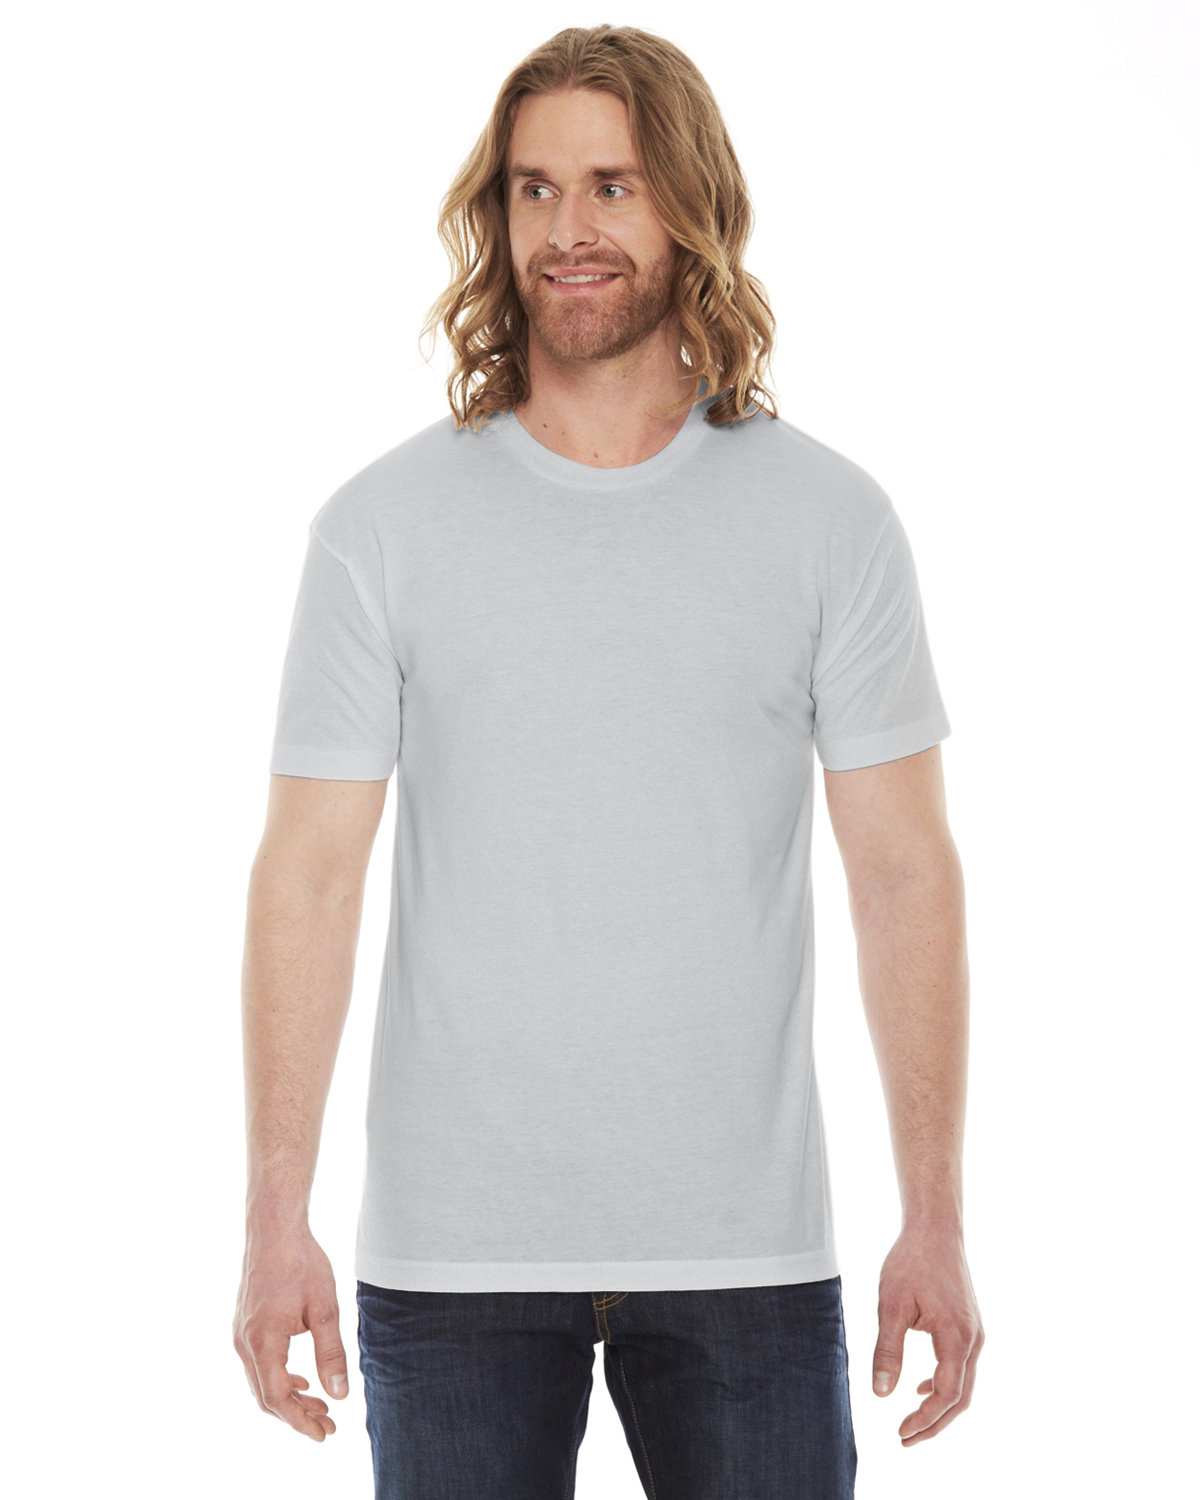 American Apparel Unisex Classic T-Shirt NEW SILVER